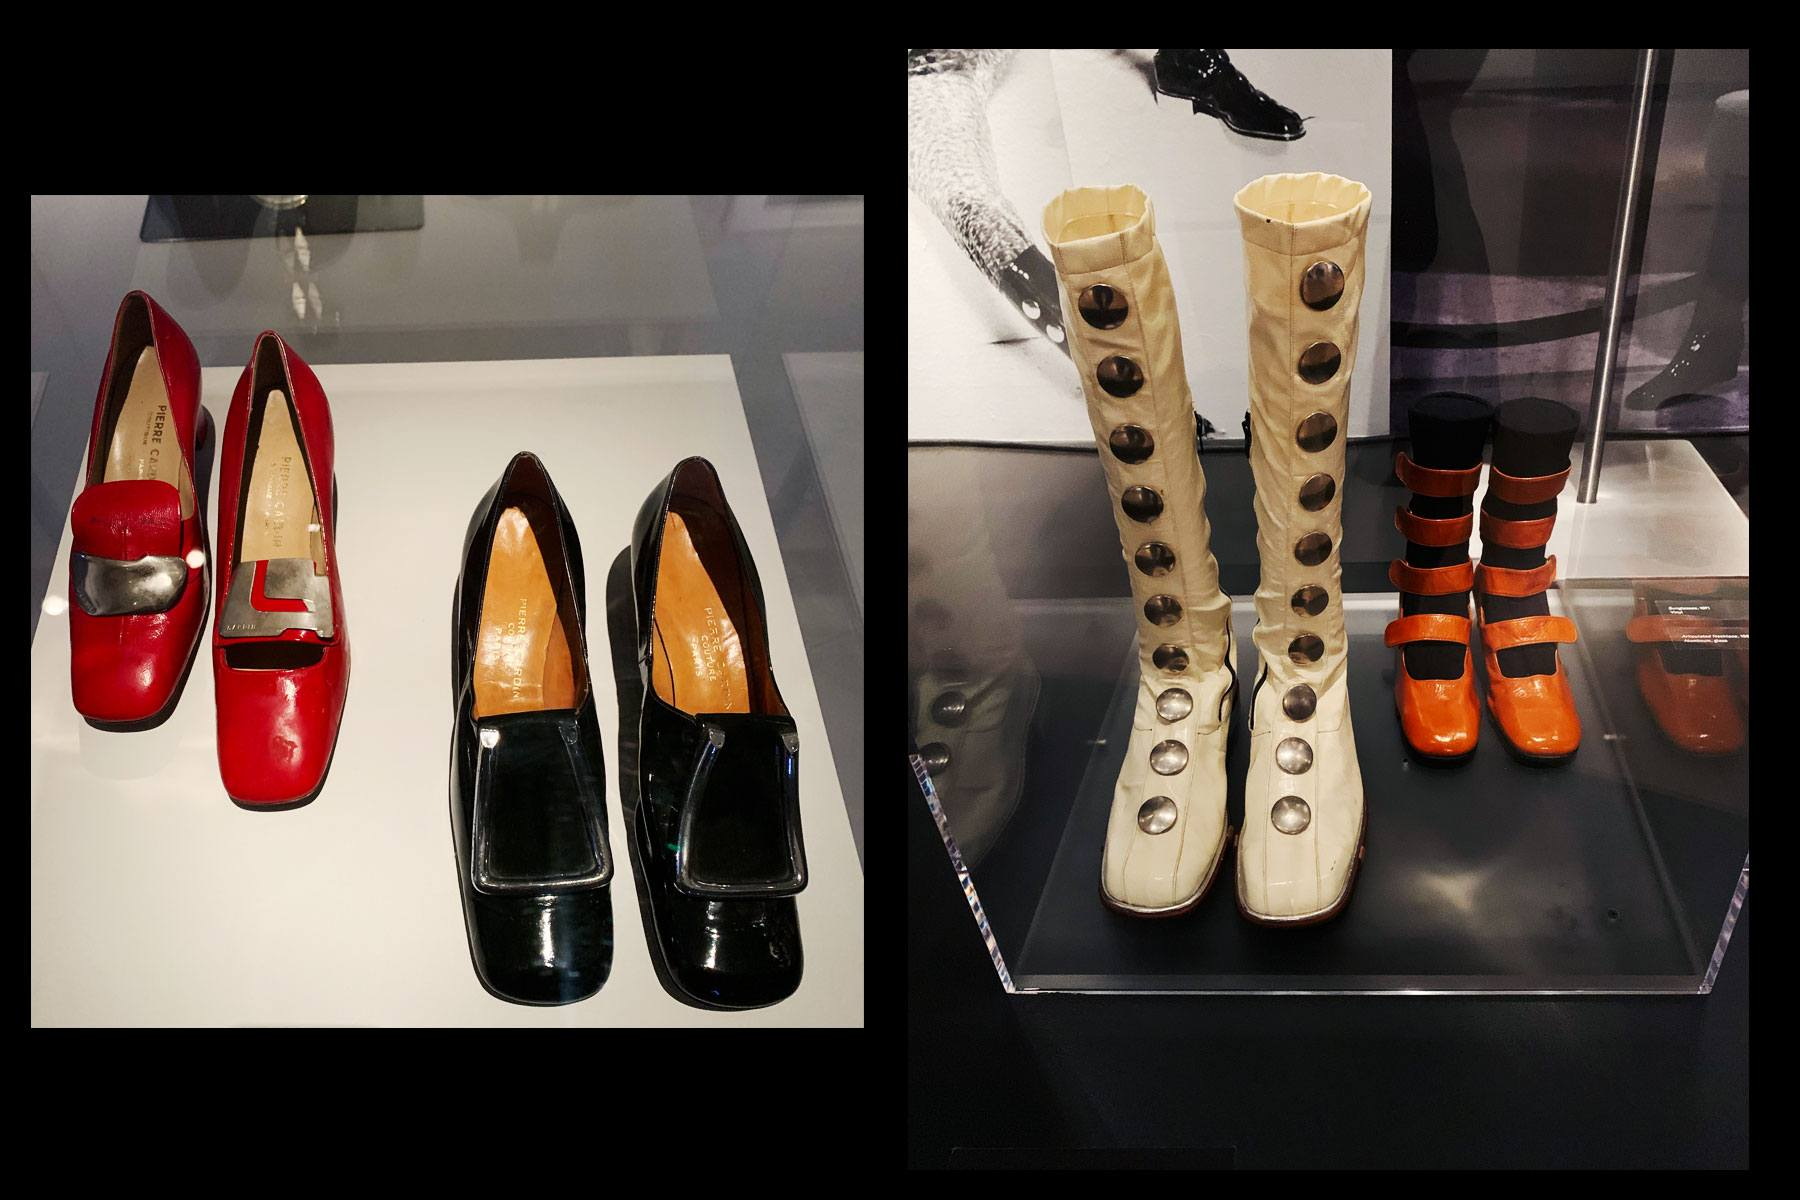 Vintage Pierre Cardin footwear at the Brooklyn Museum. Photographed by Alexander Thompson for Ponyboy magazine.